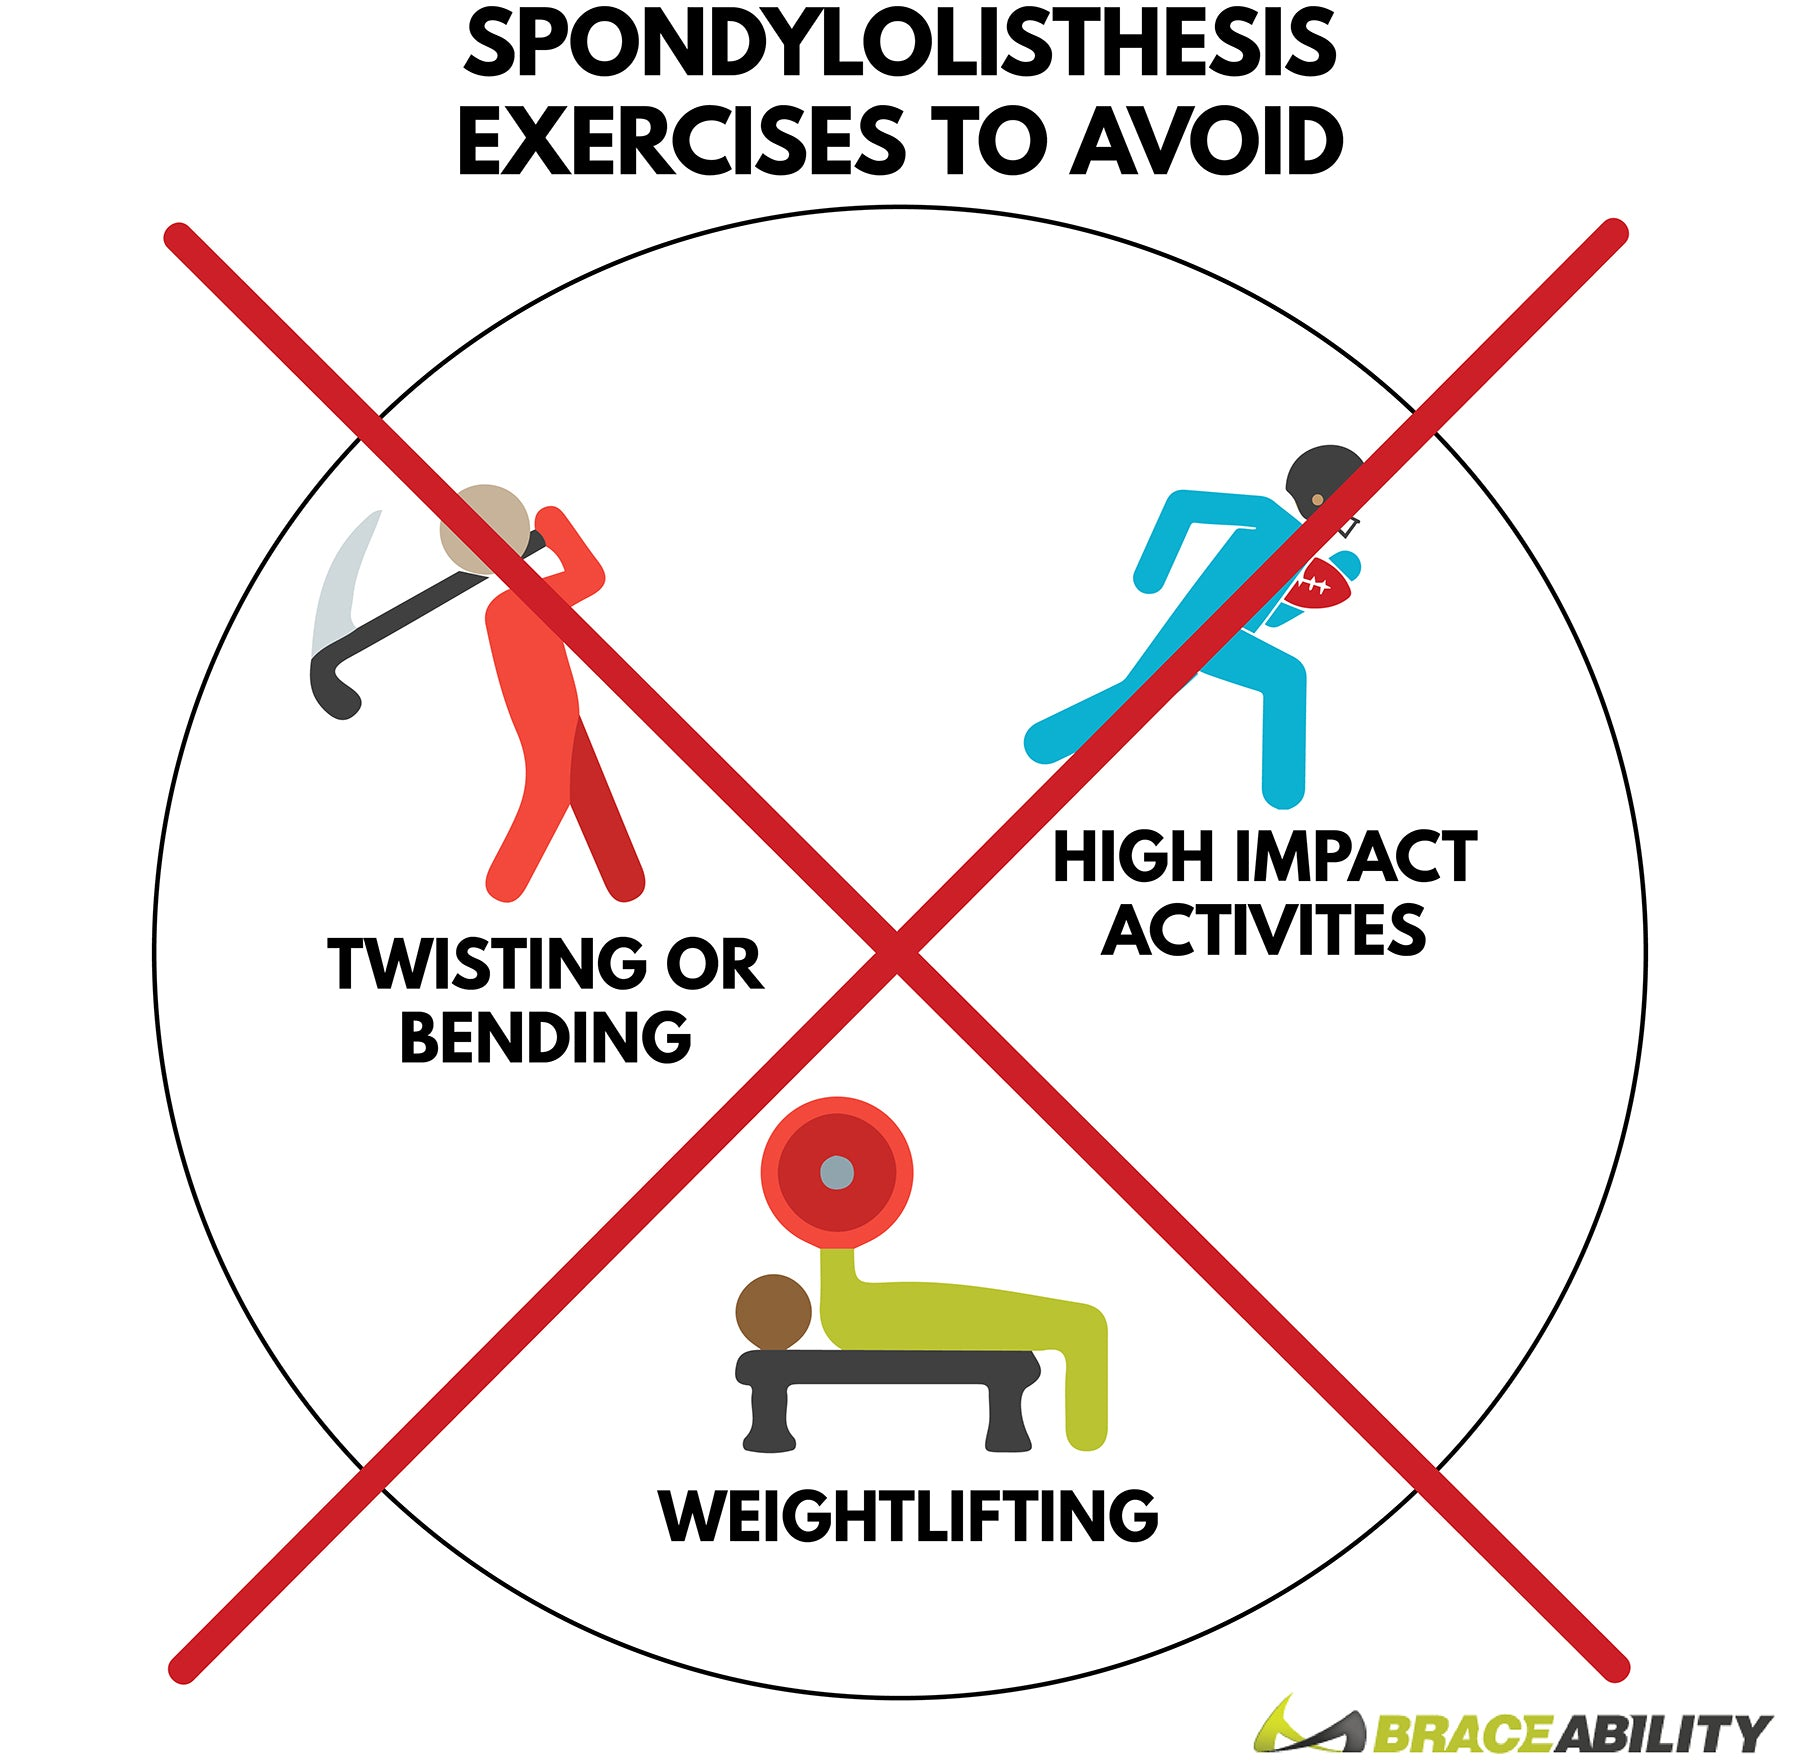 Avoid these three exercises to prevent spondylolisthesis from happening or getting worse